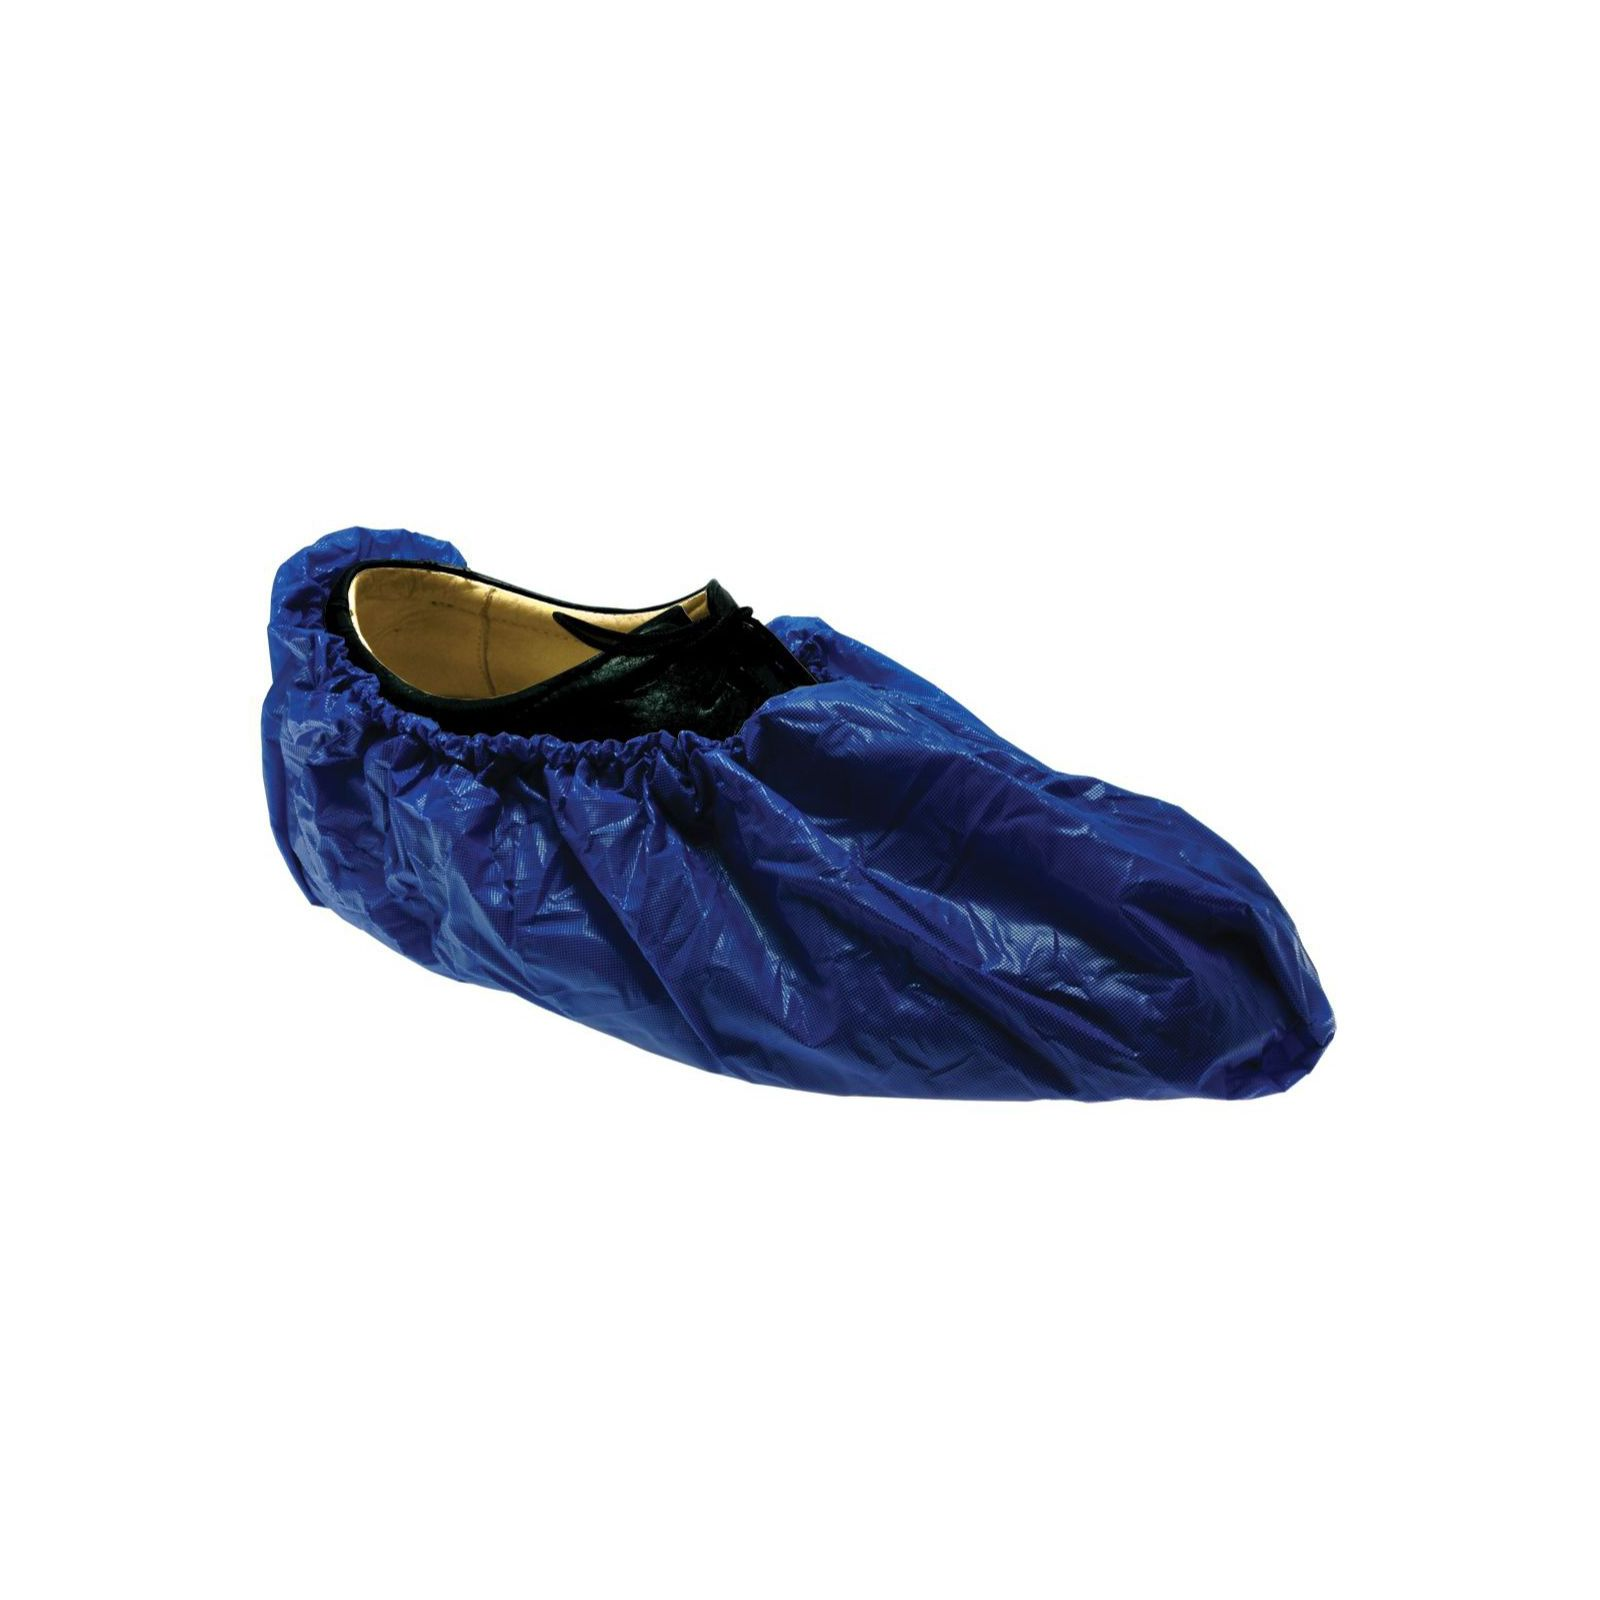 Rheem 849120 -  Shoe Covers - Waterproof - Dark Blue (Box of 50 Pairs)